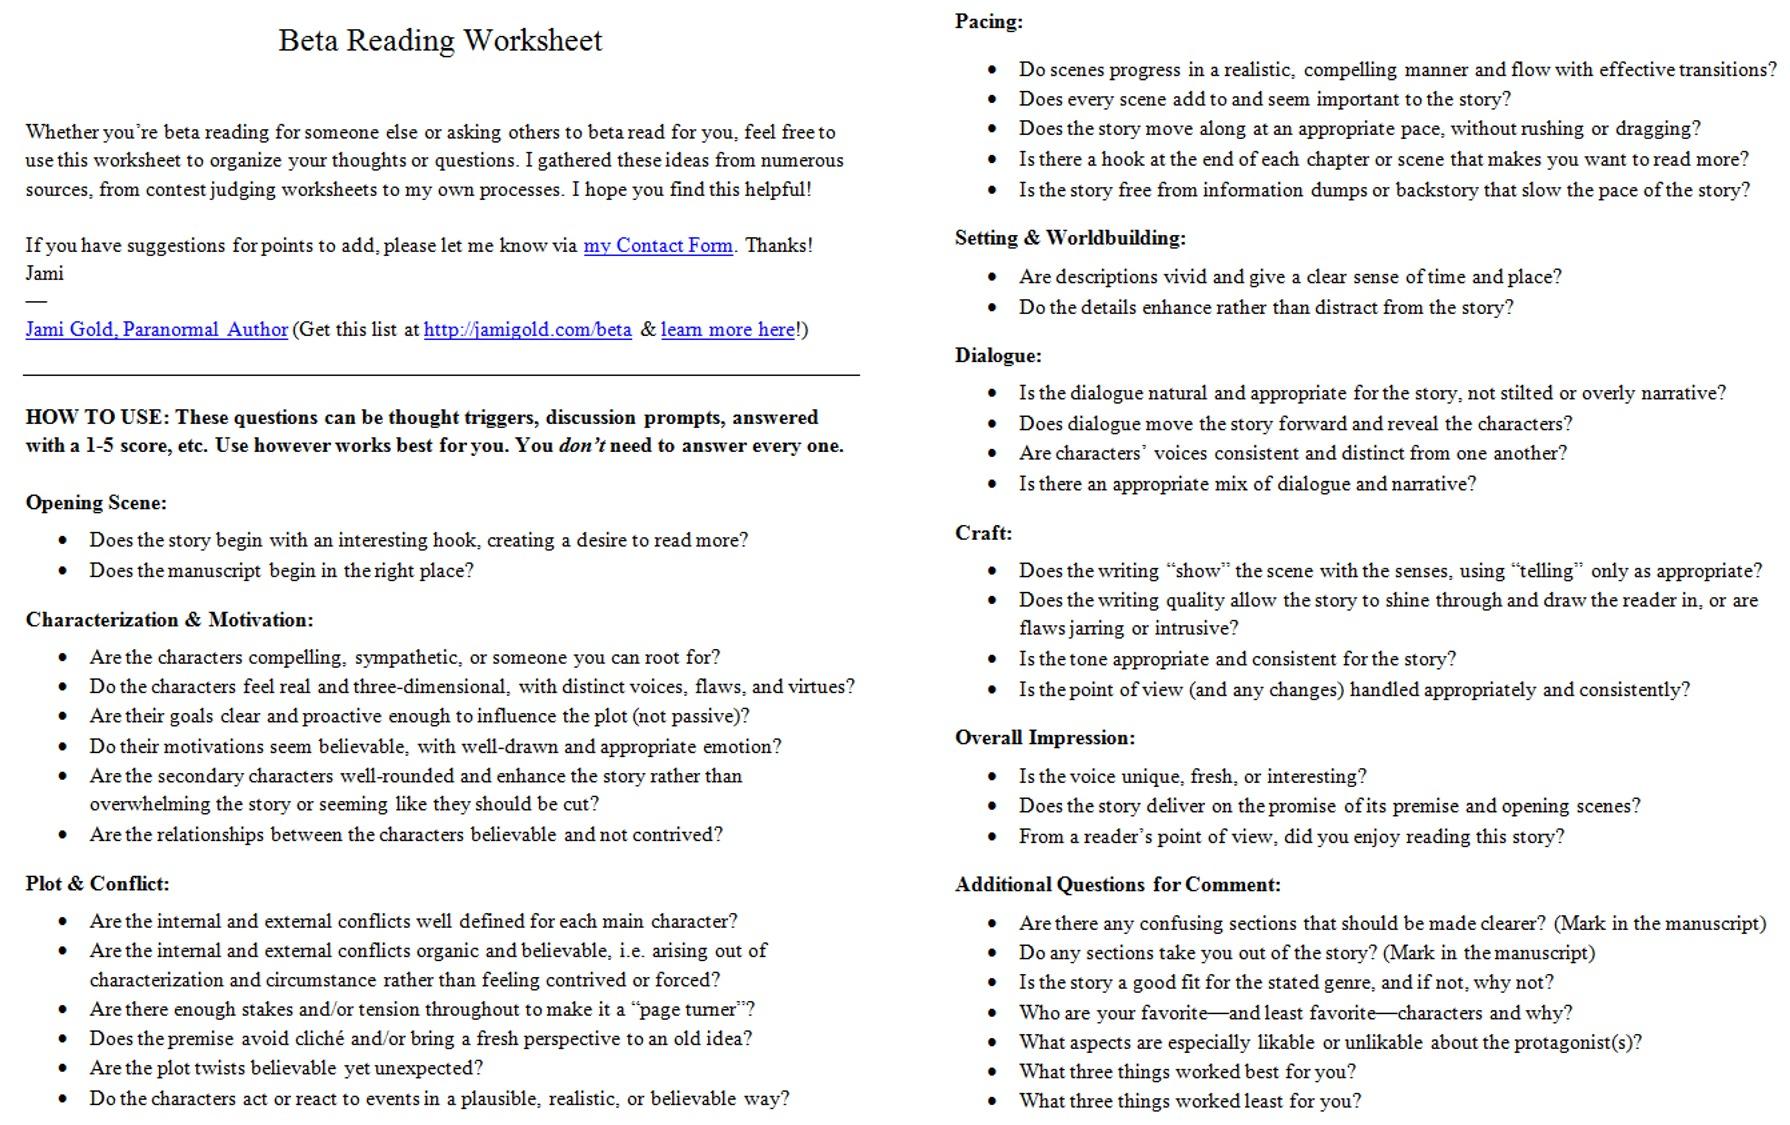 Aldiablosus  Pleasing Worksheets For Writers  Jami Gold Paranormal Author With Remarkable Screen Shot Of The Twopage Beta Reading Worksheet With Lovely Free Trigonometry Worksheets Also Th Grade Reading Comprehension Worksheets Free In Addition Note Name Worksheets And Free Fun Math Worksheets As Well As Counting By Fives Worksheets Additionally Addition And Subtraction Worksheets Rd Grade From Jamigoldcom With Aldiablosus  Remarkable Worksheets For Writers  Jami Gold Paranormal Author With Lovely Screen Shot Of The Twopage Beta Reading Worksheet And Pleasing Free Trigonometry Worksheets Also Th Grade Reading Comprehension Worksheets Free In Addition Note Name Worksheets From Jamigoldcom